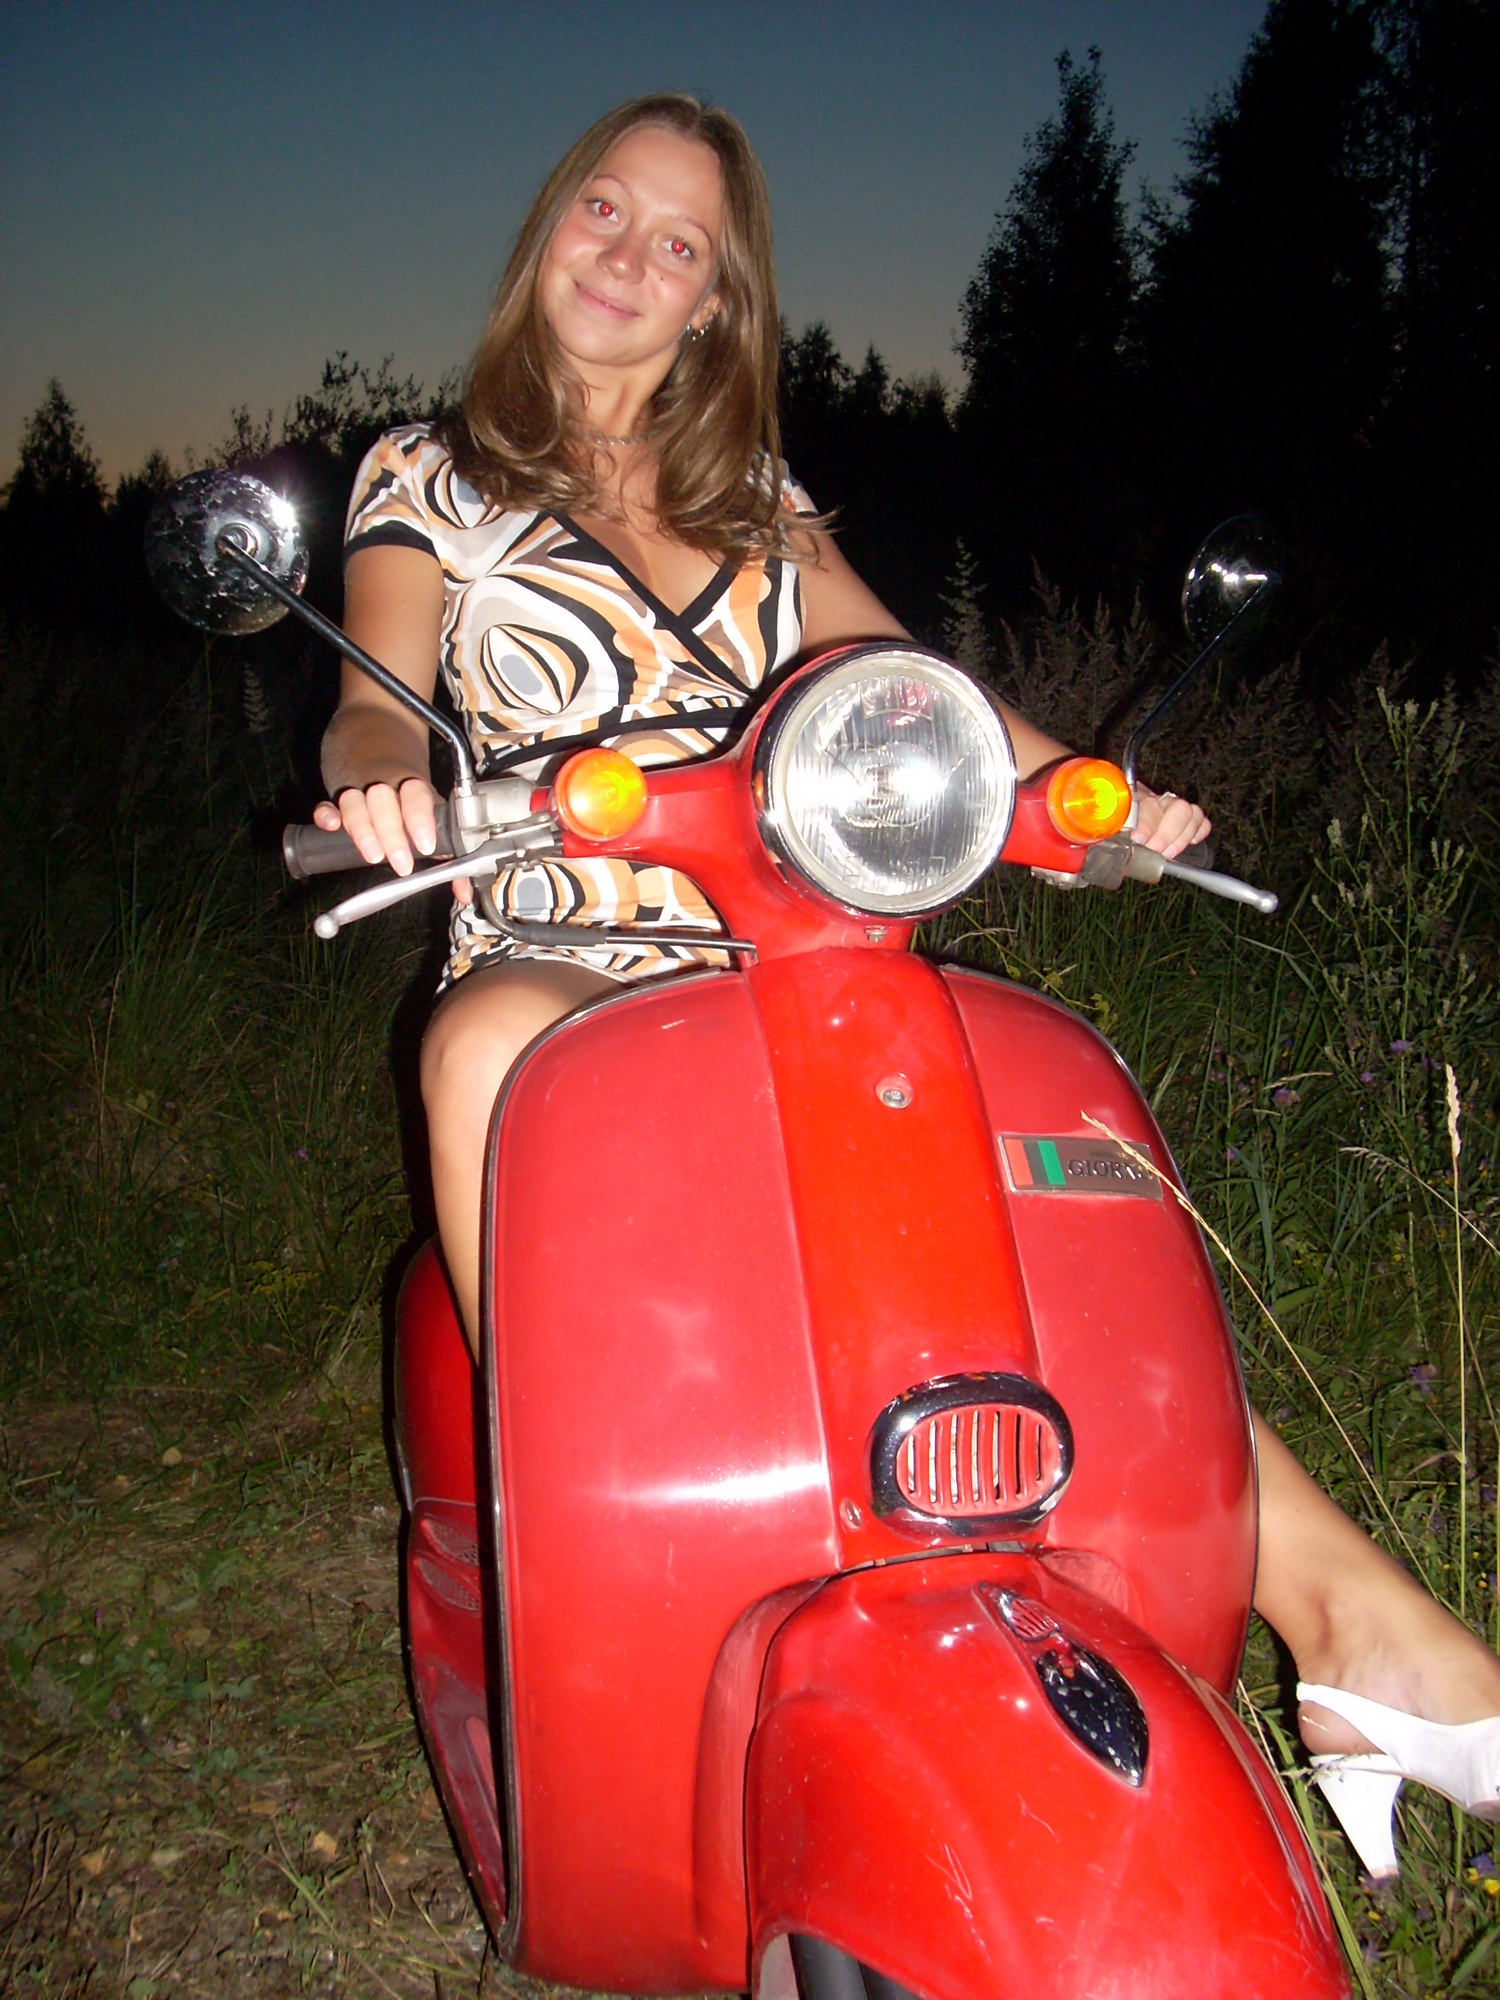 chubby-amateur-girl-nude-outdoor-tits-ass-02